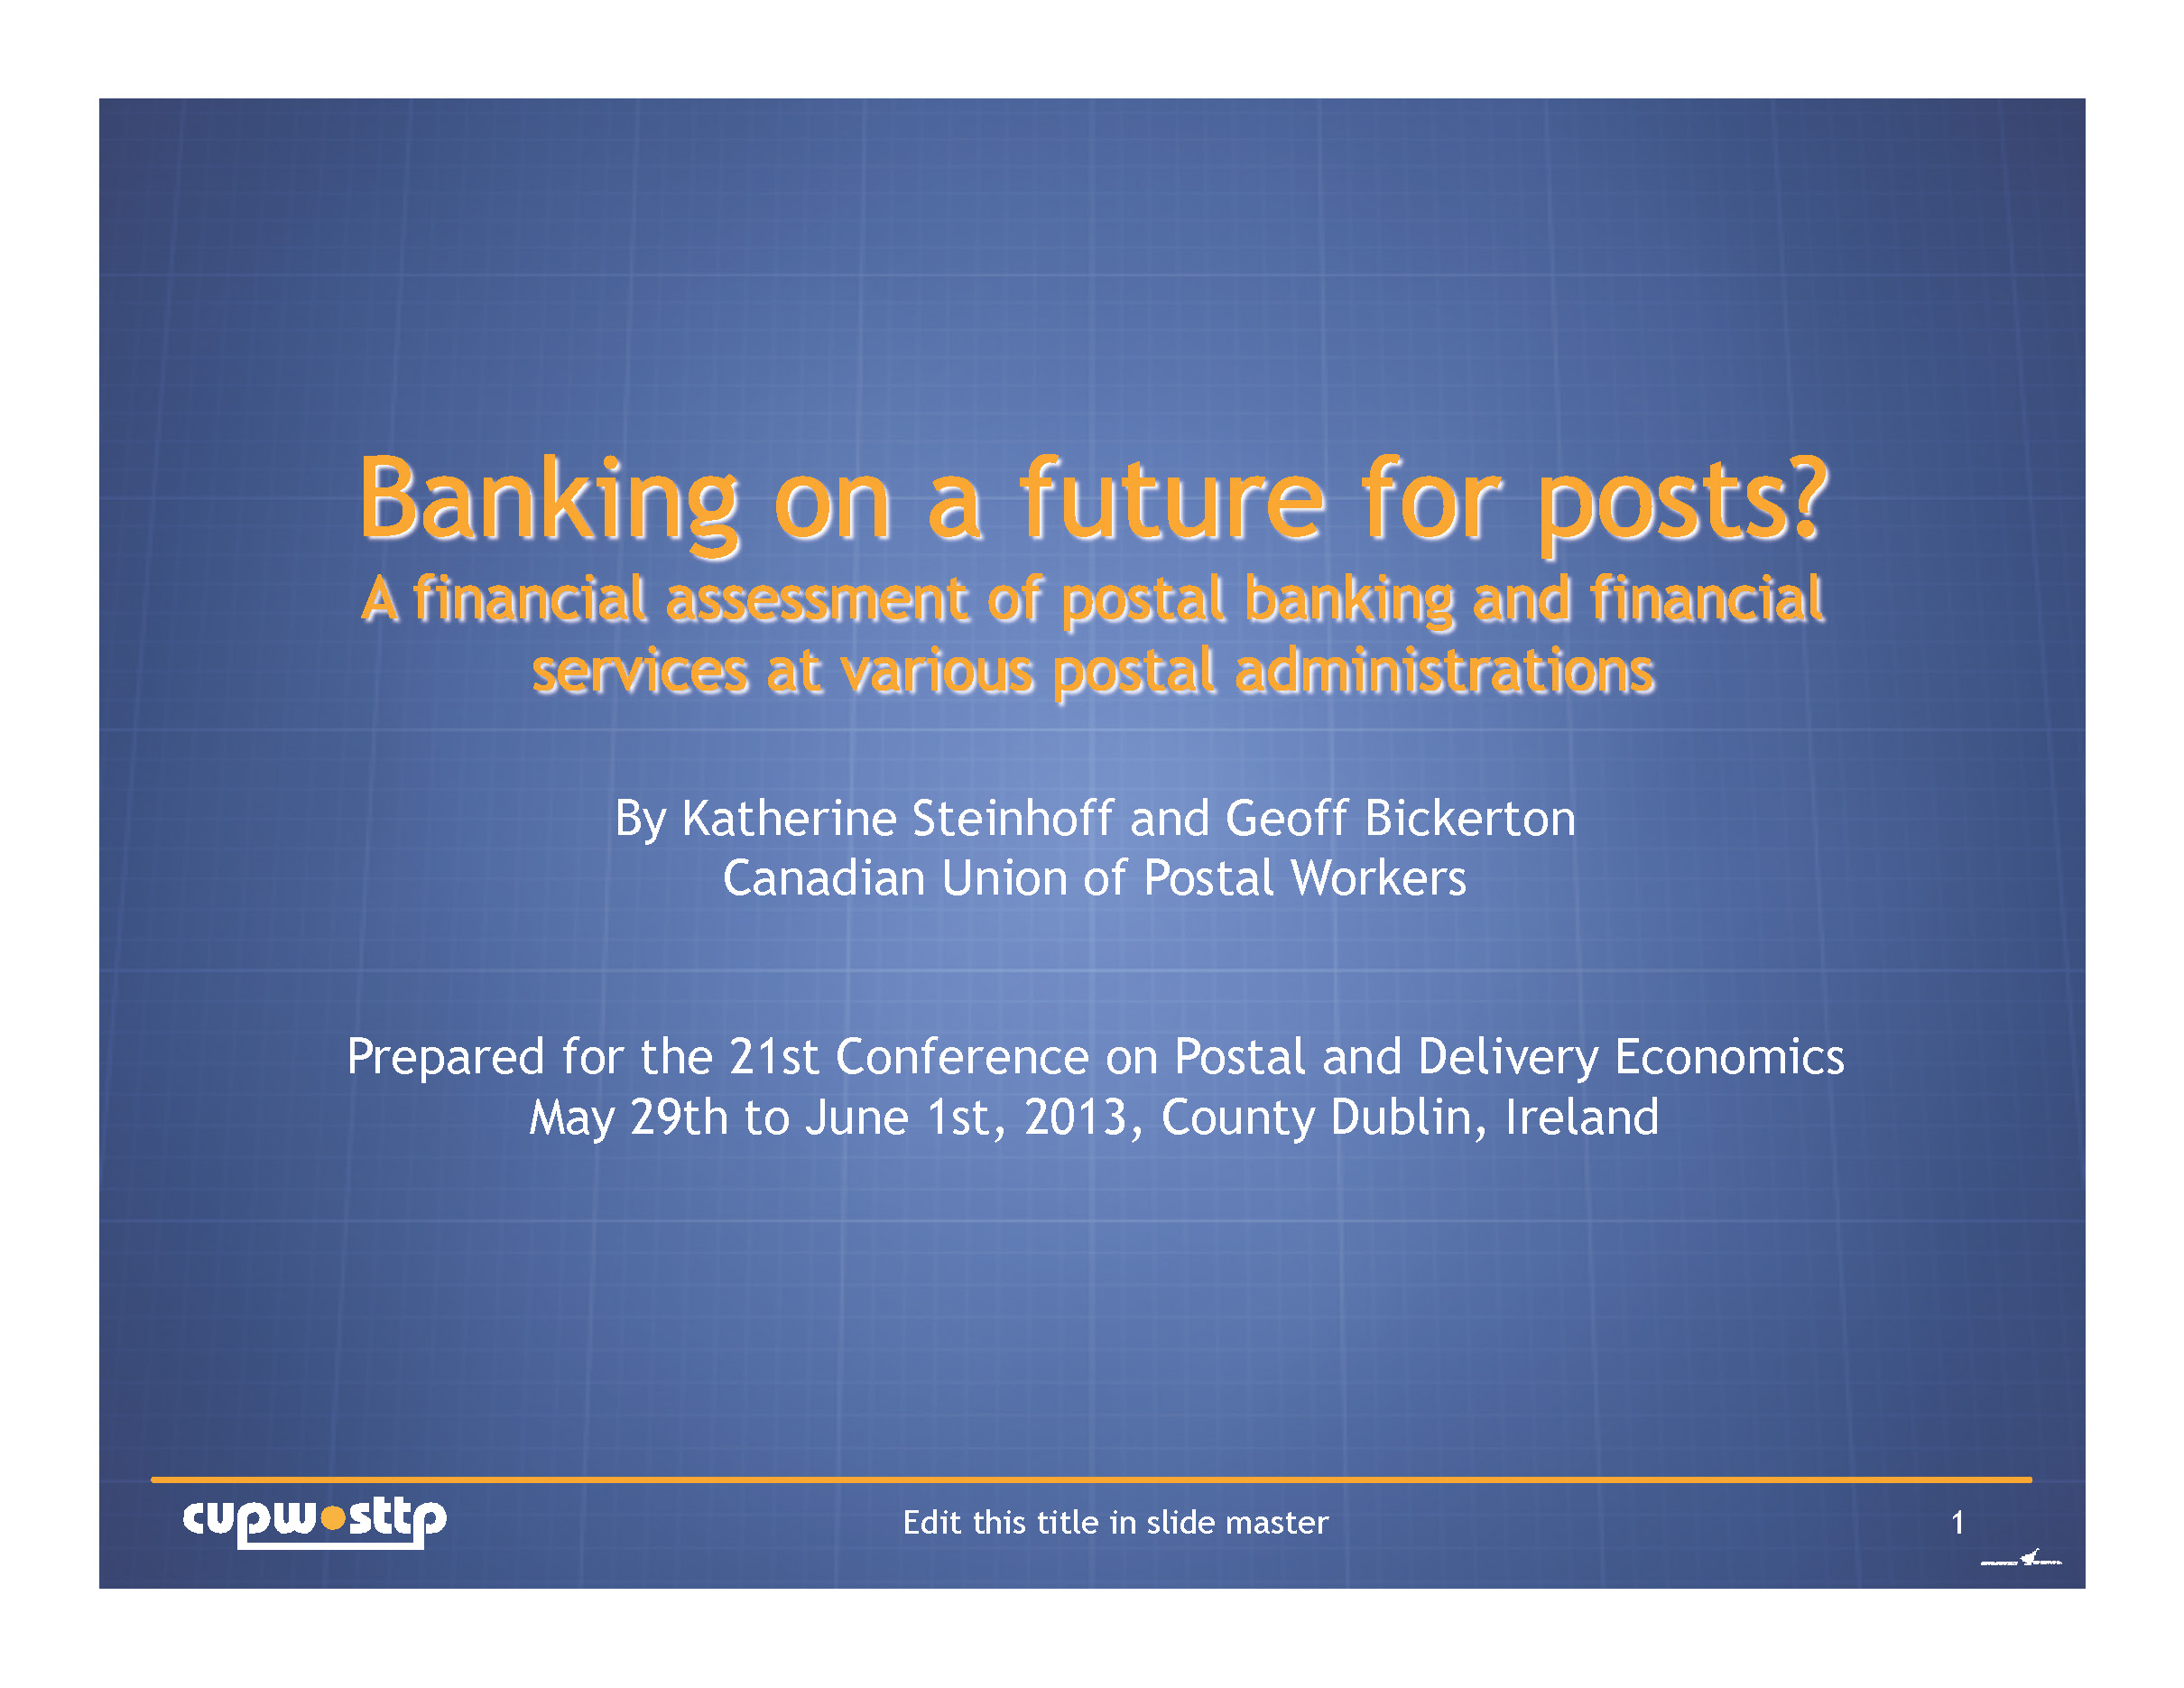 Banking on a future for posts? (PPT)